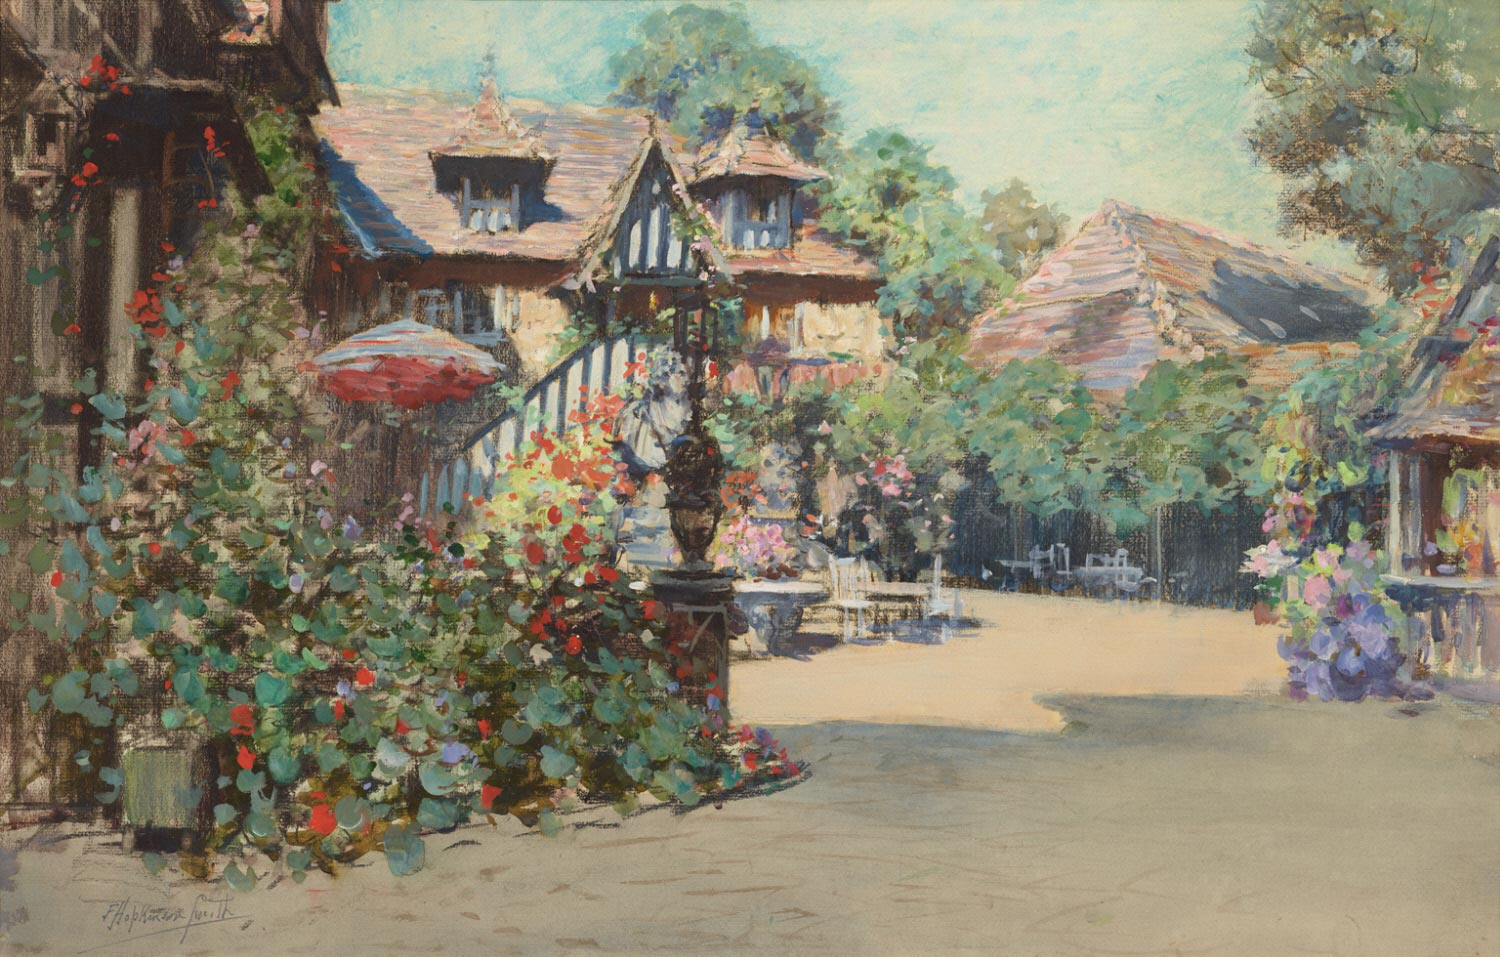 Summer Afternoon, Inn of William the Conqueror, Dives-sur-mer, Normandy